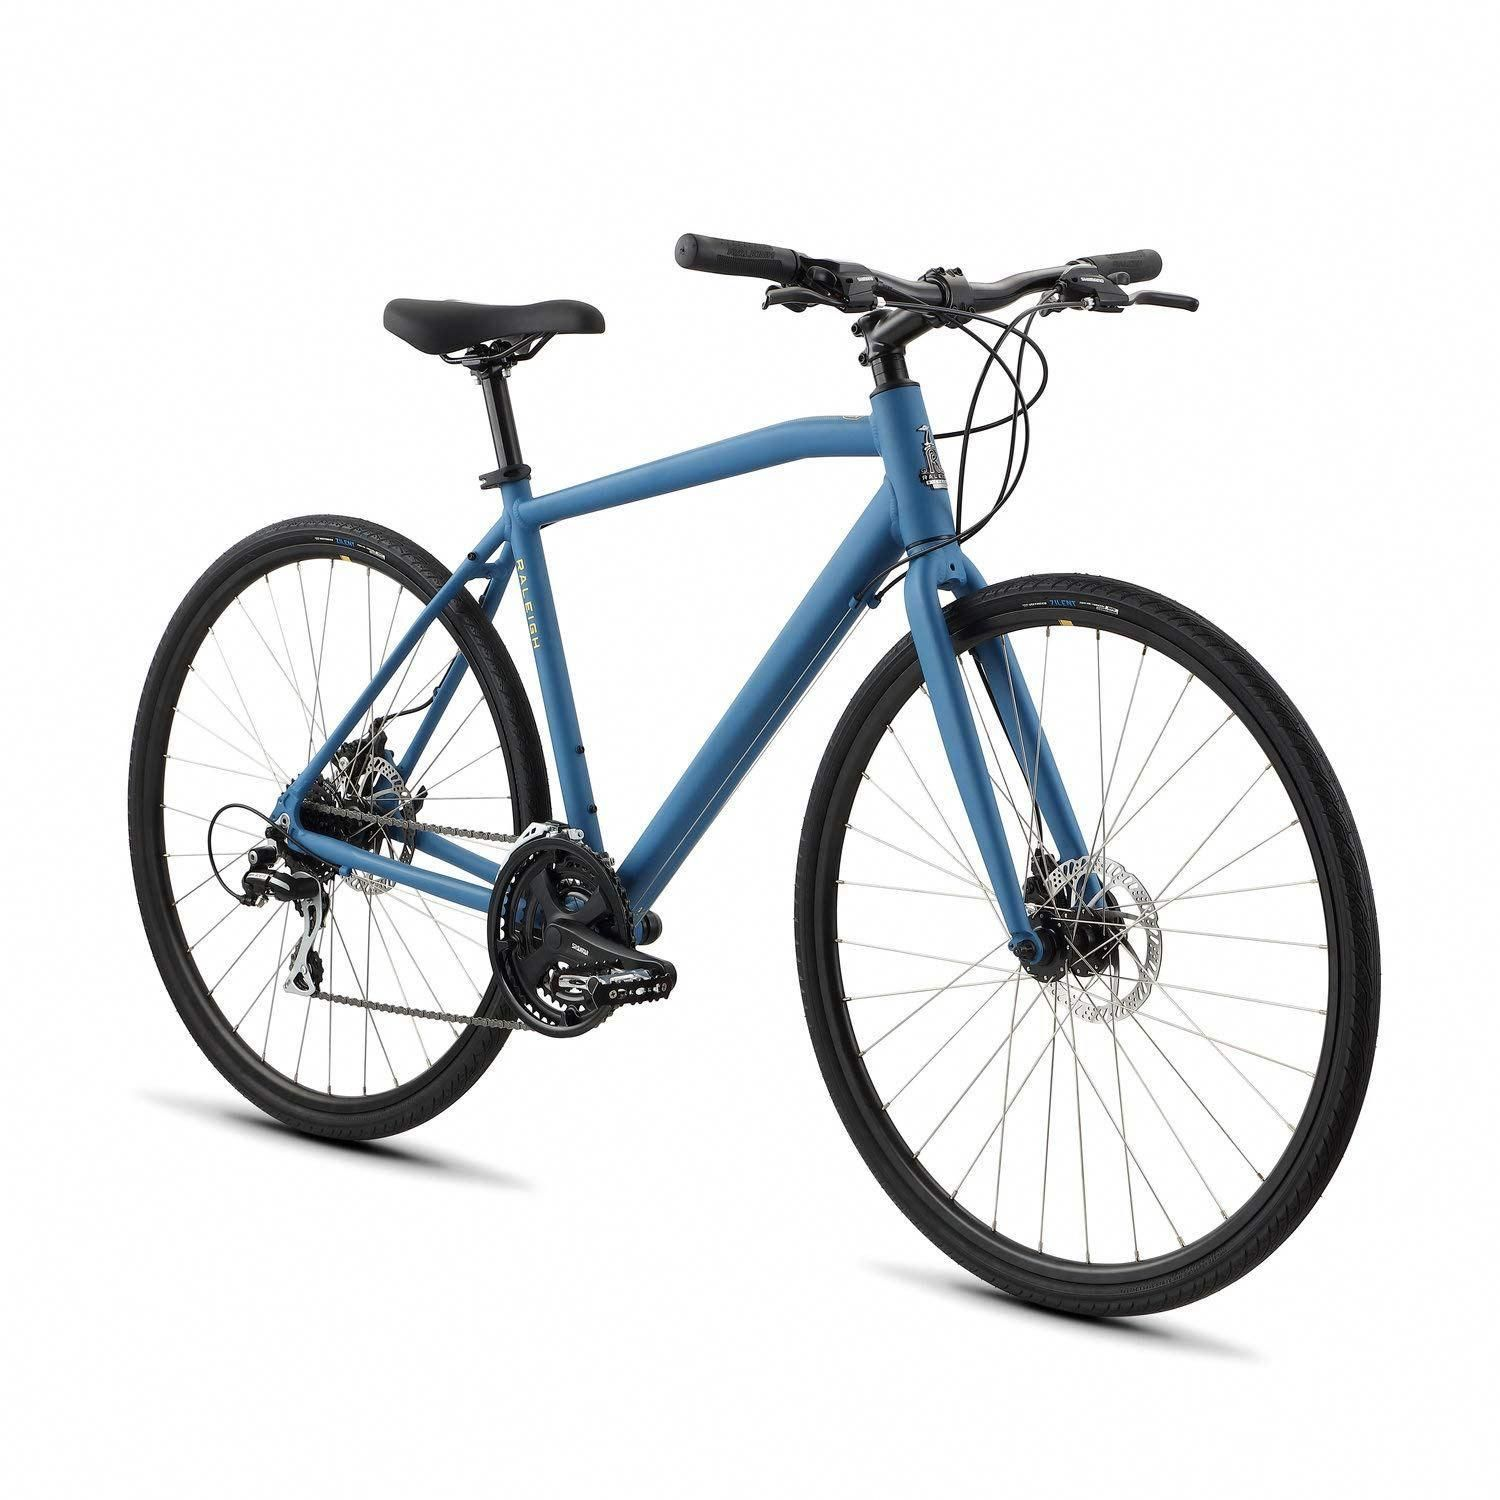 Raleigh Bicycles Cadent 2 Fitness Hybrid Bike 4 1 Out Of 5 Stars Via 20 Reviews See Buy Option 56 078 In Sports Outdoors 13in Hy In 2020 Raleigh Bicycle